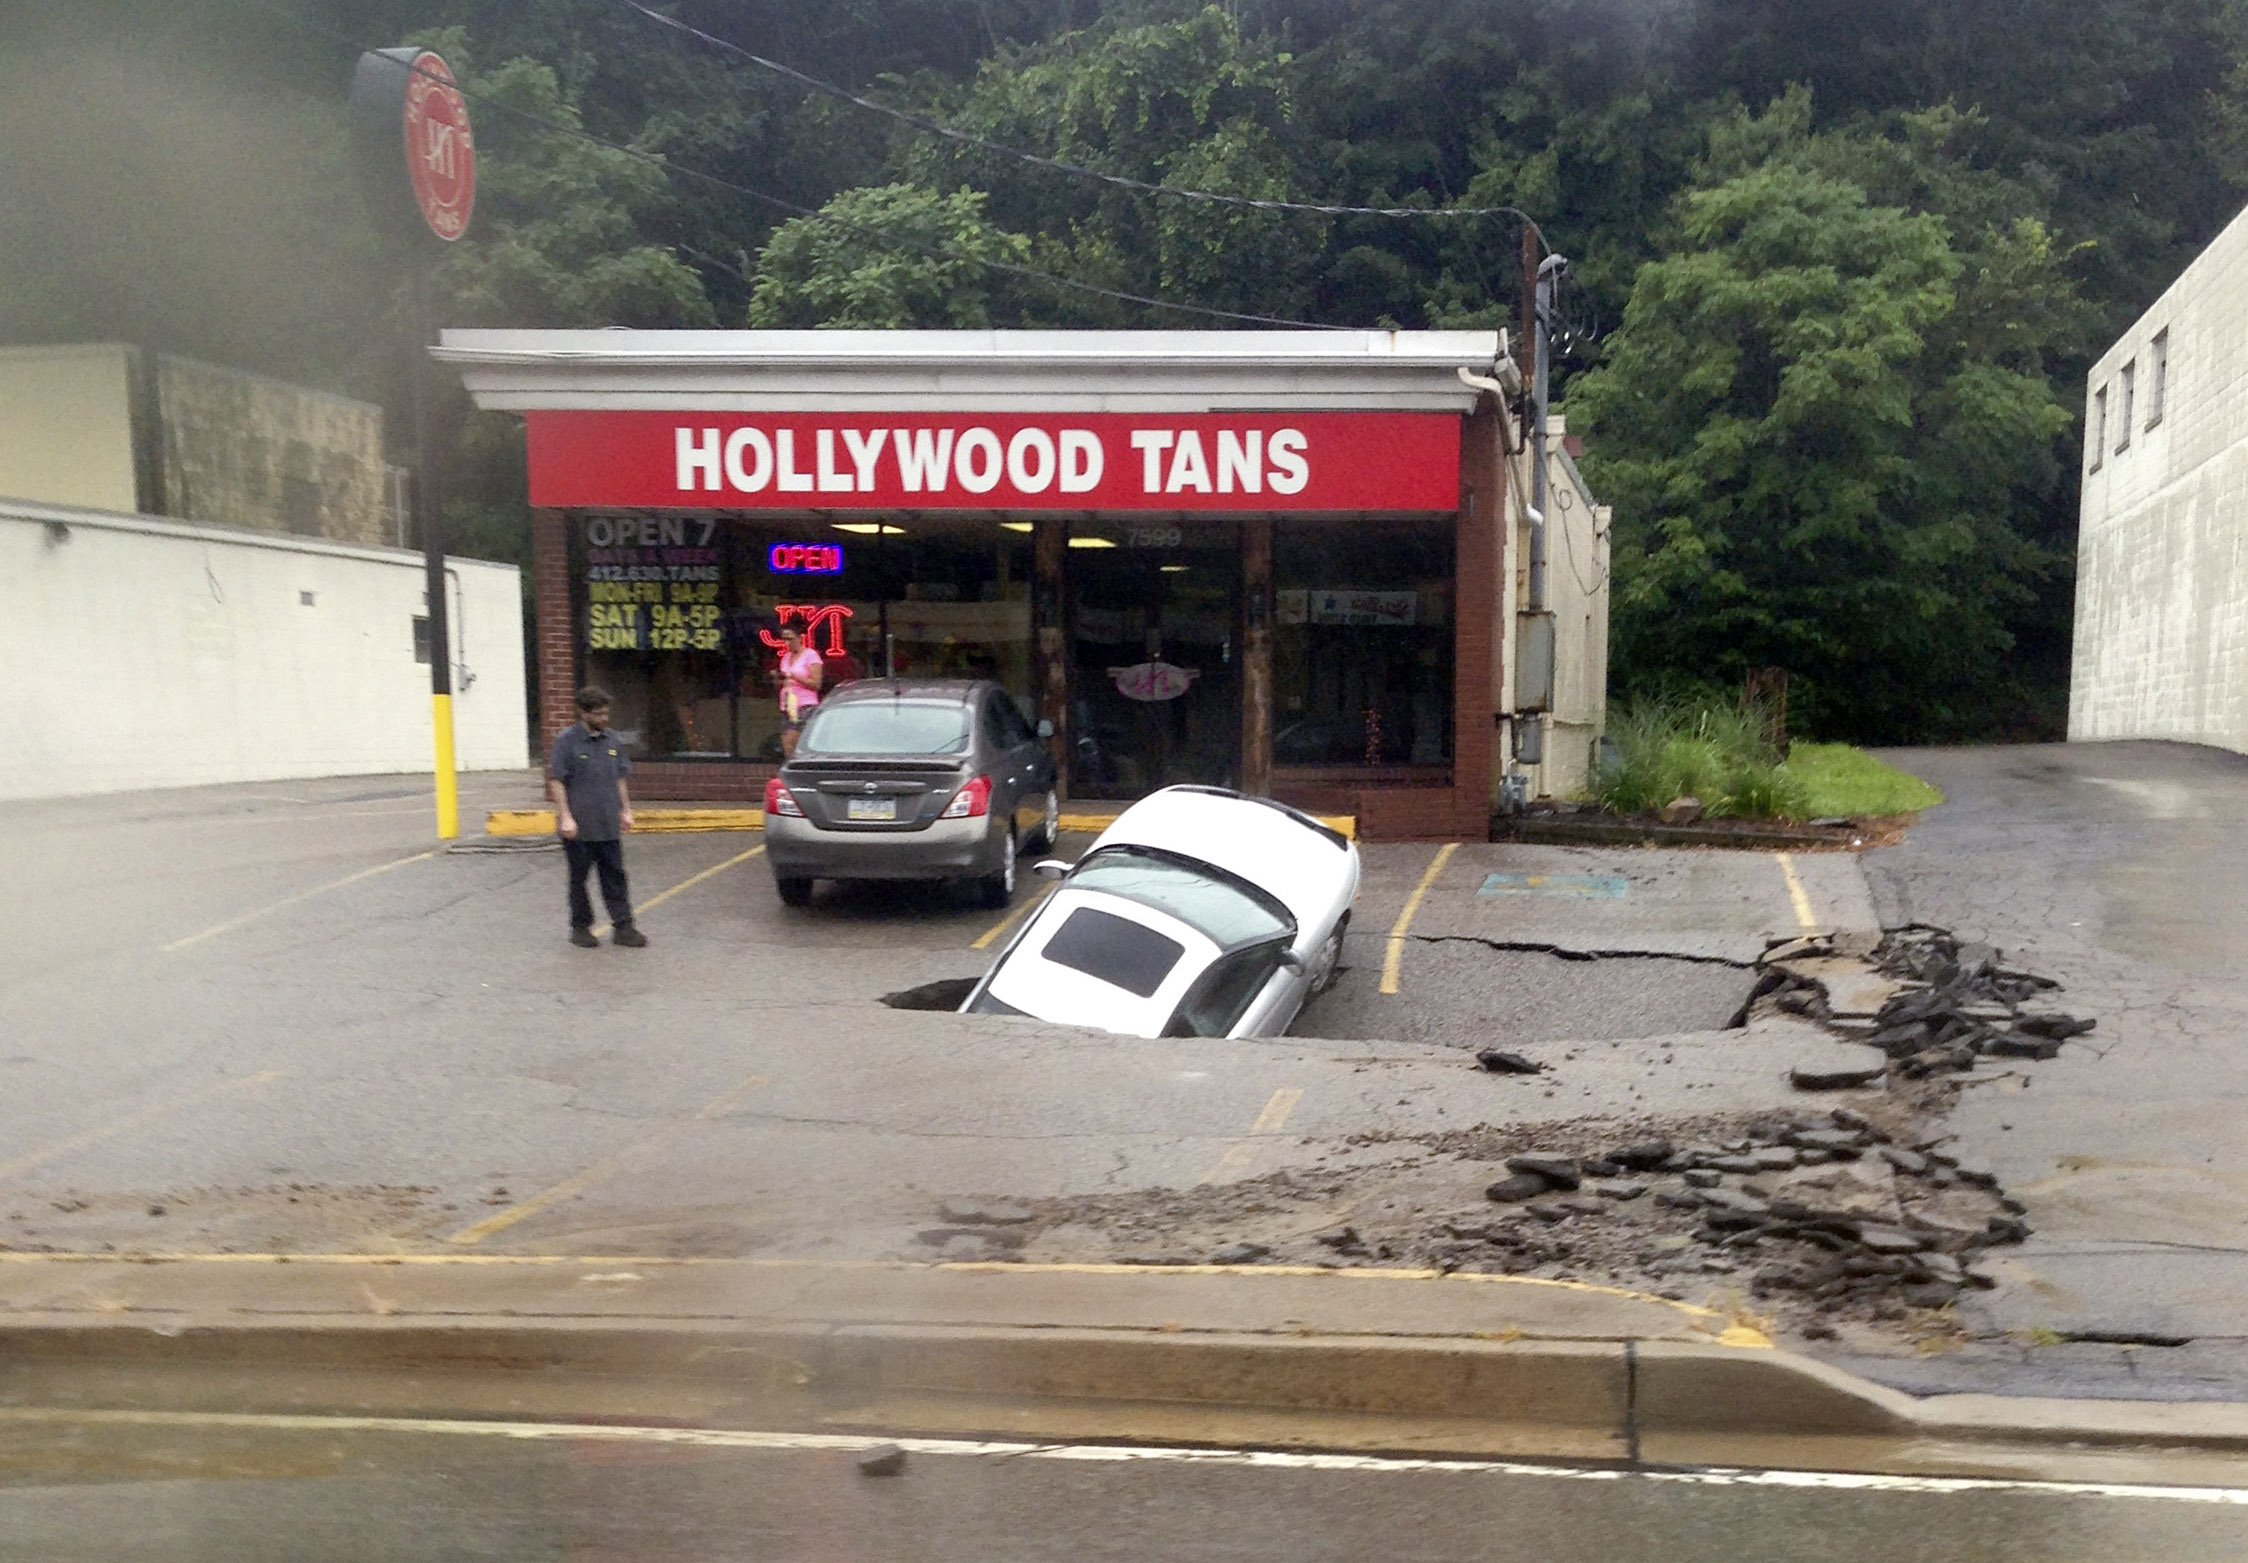 A man looks at a car as it falls into a sinkhole on McKnight Road in Ross Township of Pittsburgh on Aug. 12, 2014.